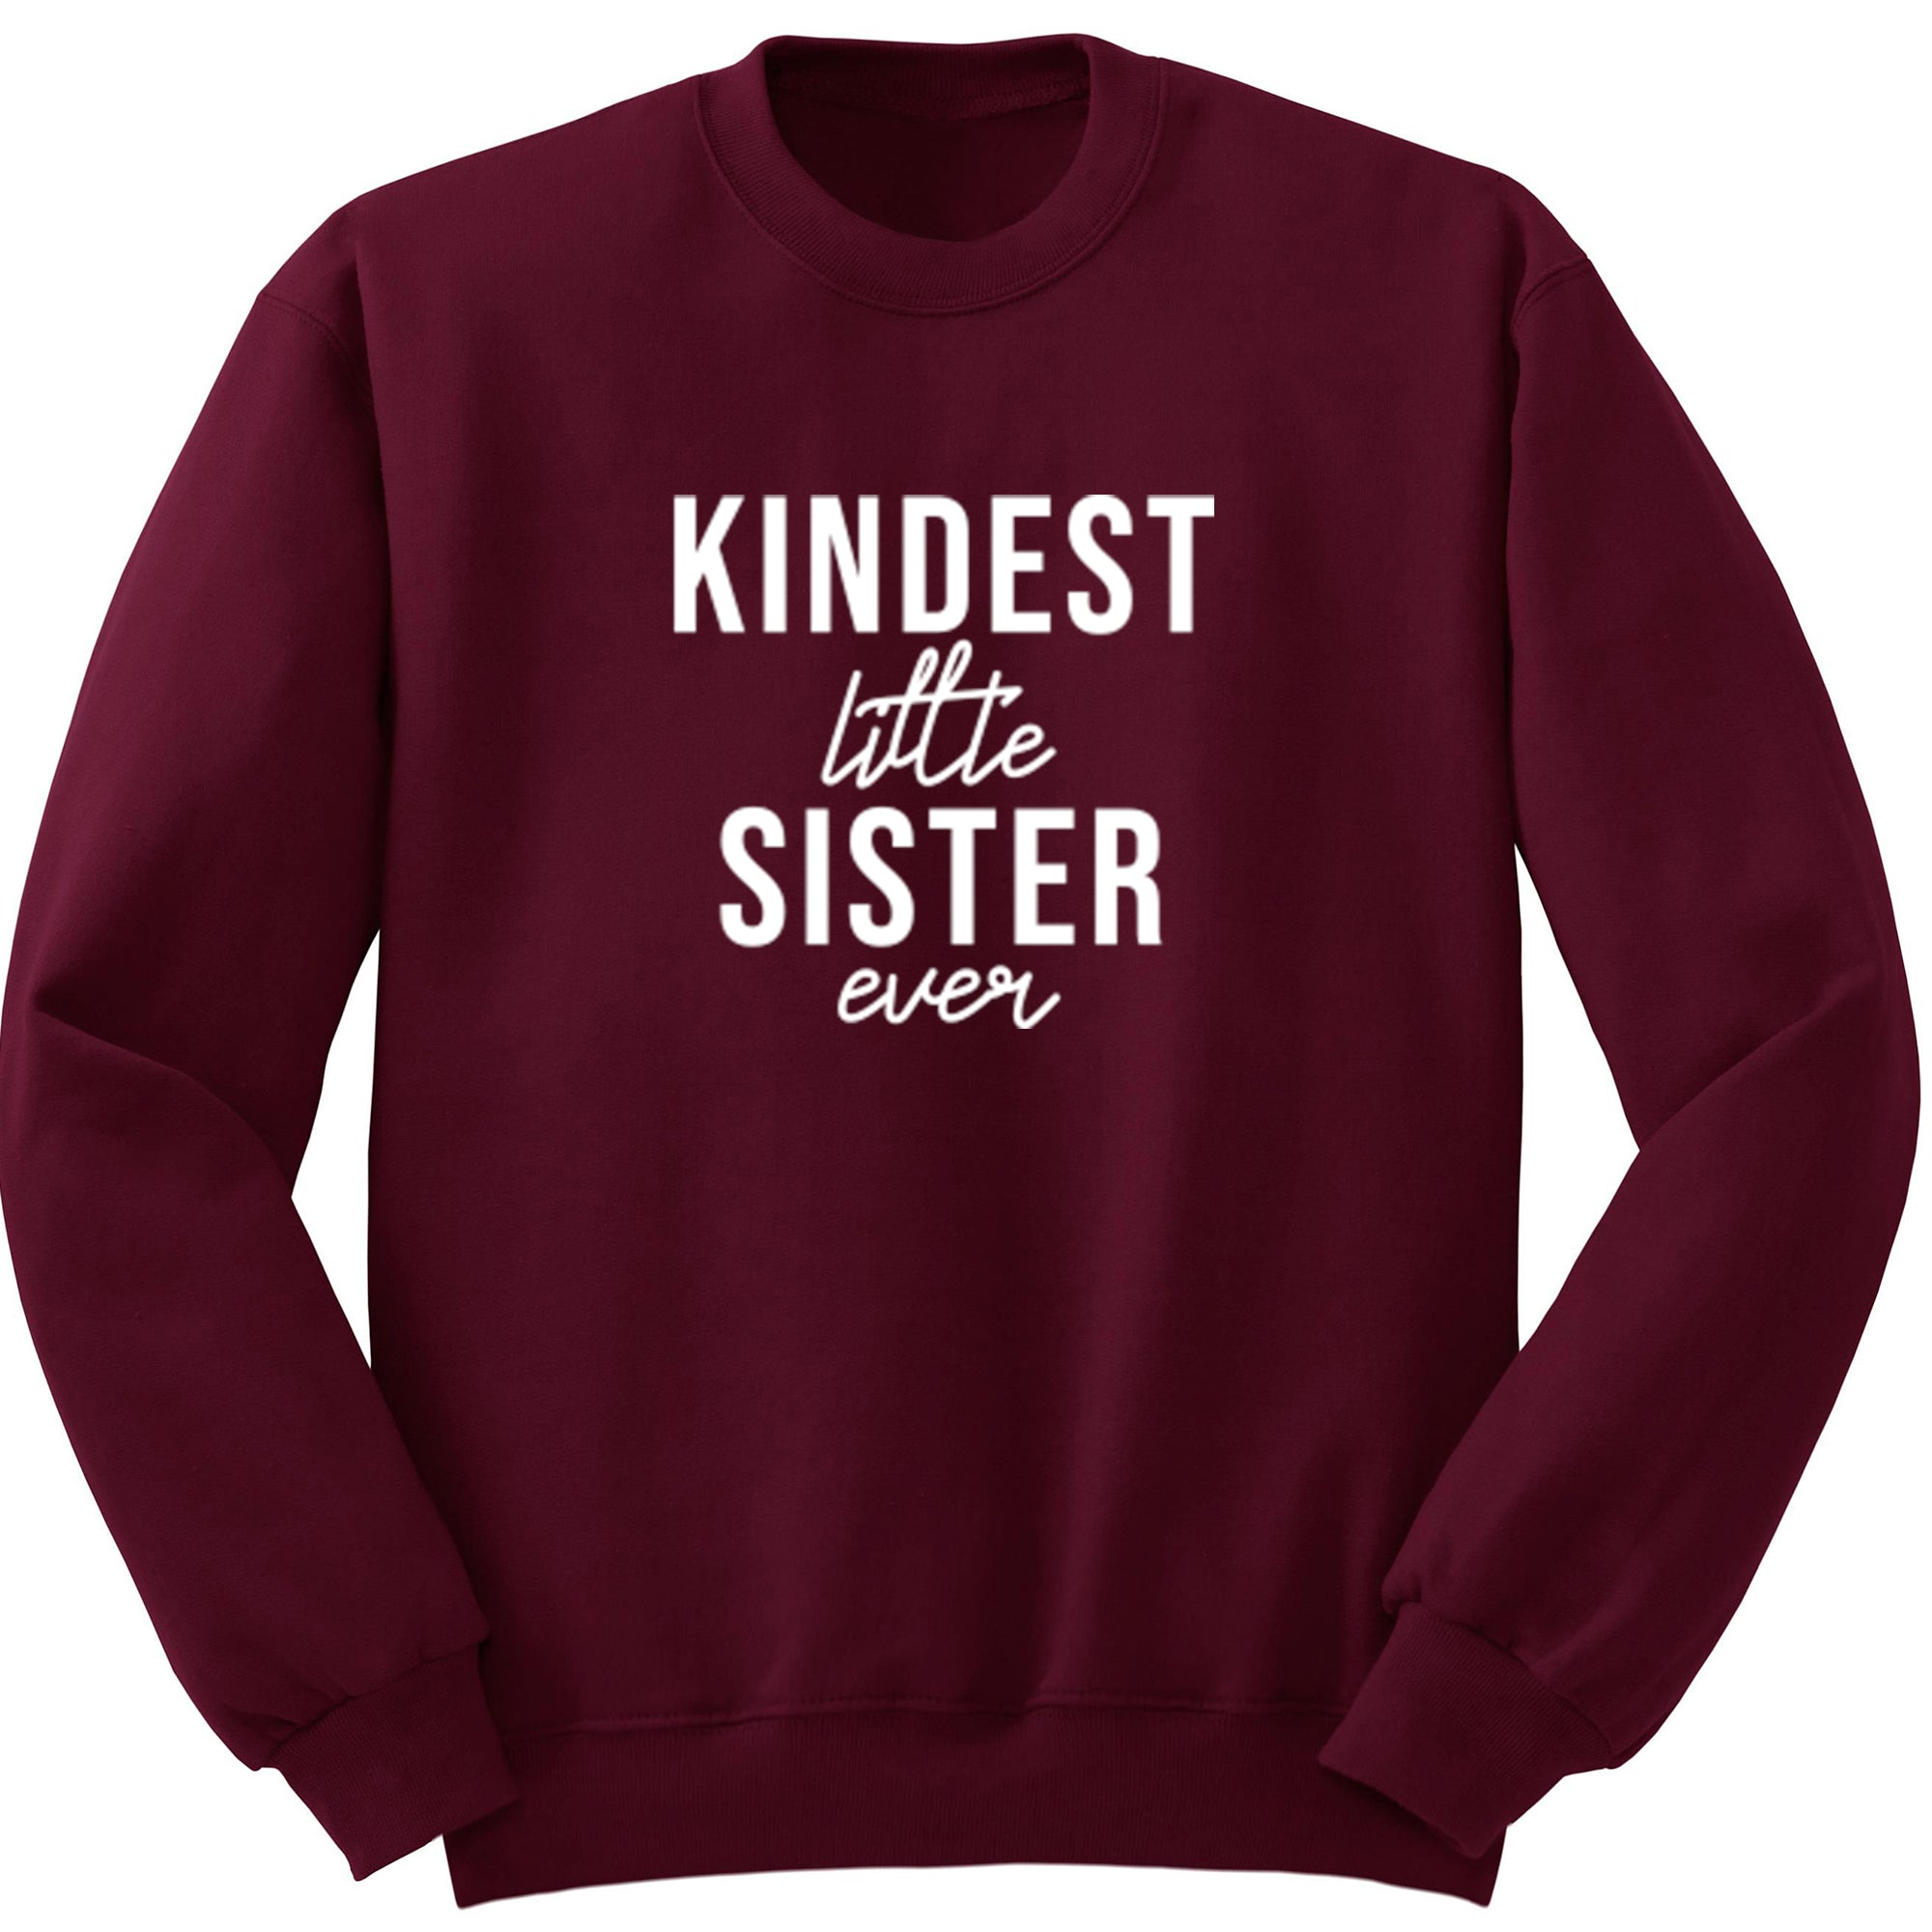 Kindest Little Sister Ever Unisex Jumper S0507 - Illustrated Identity Ltd.